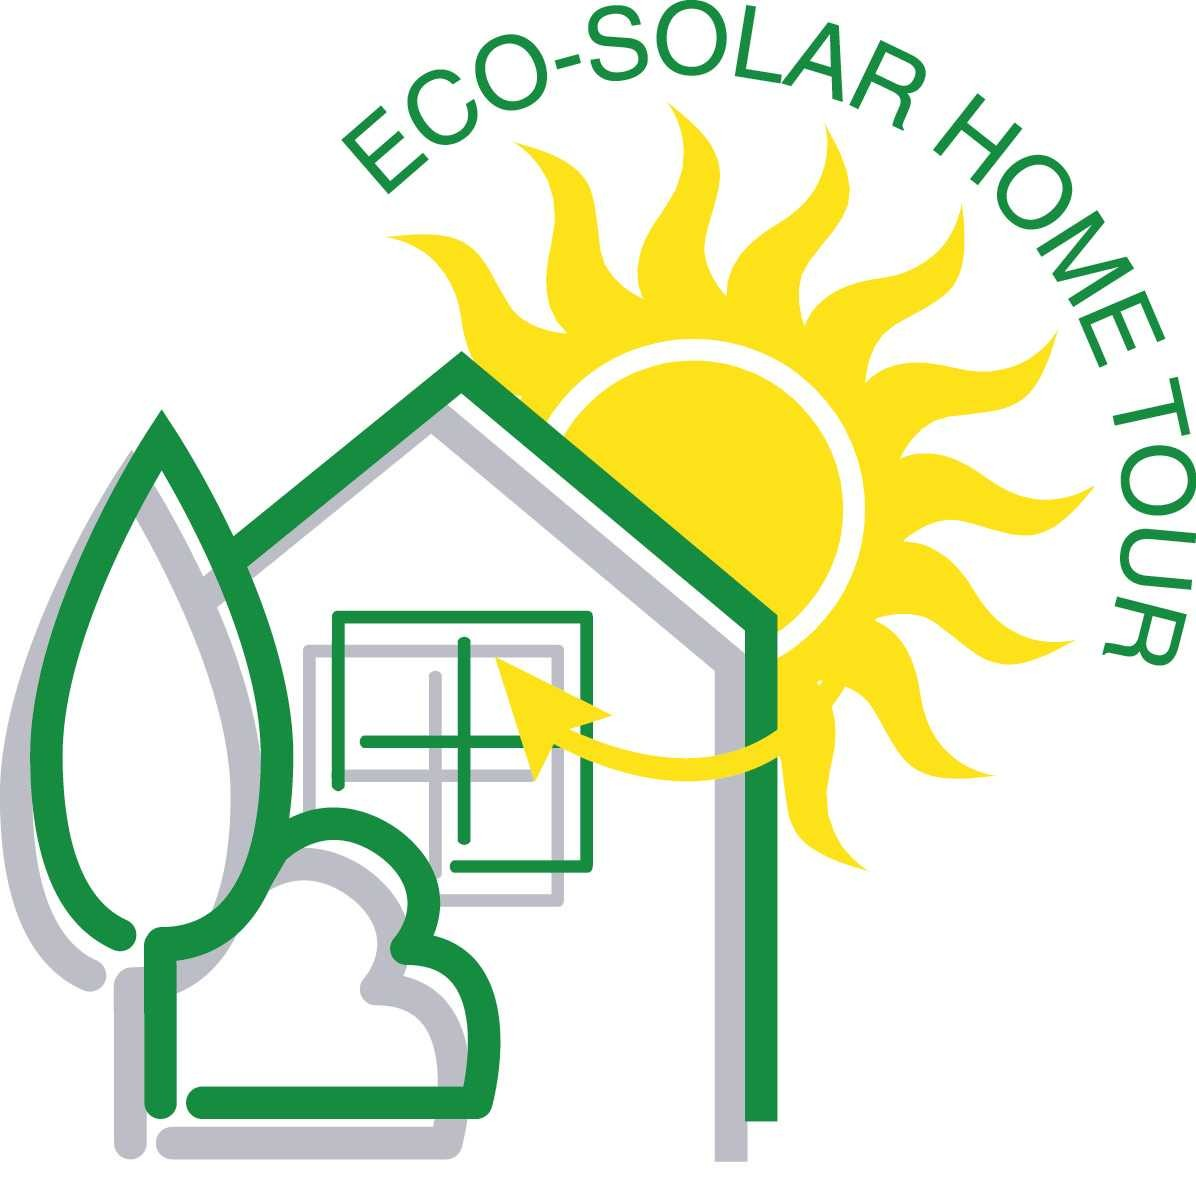 Eco Solar Tour logo